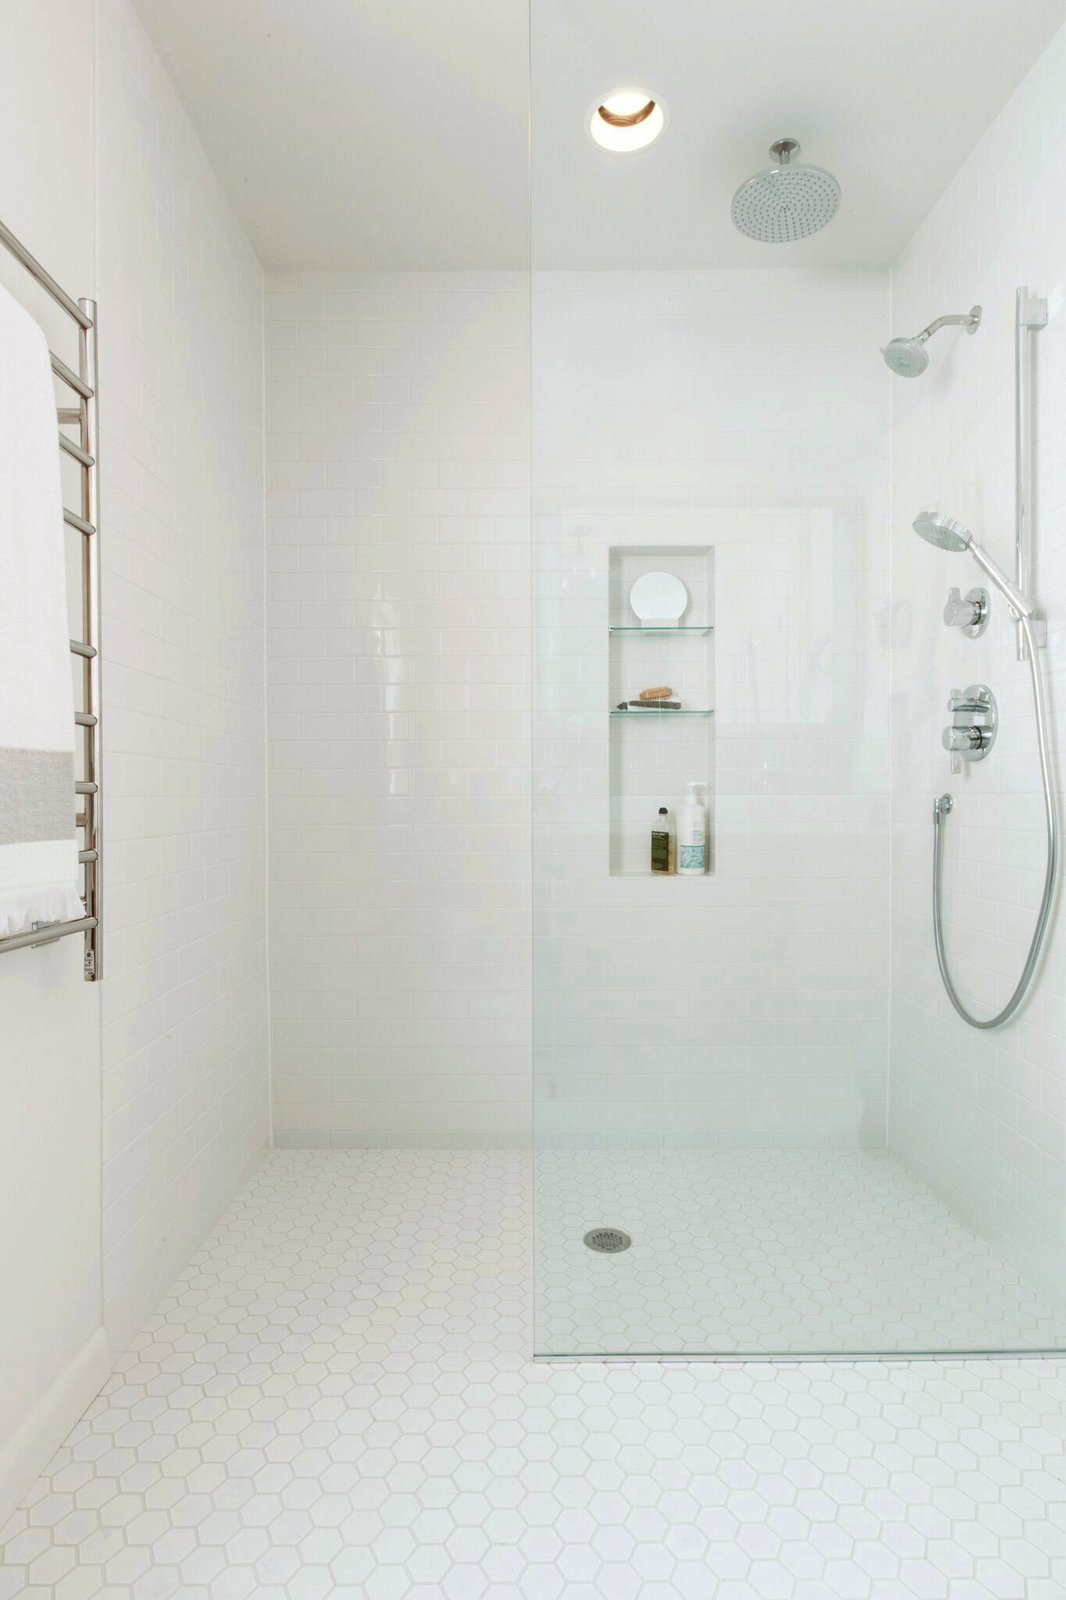 Bath Room, Ceramic Tile Floor, Subway Tile Wall, and Enclosed Shower  Photo 5 of 15 in What's the Best Way to Save Space in a Small Bathroom?